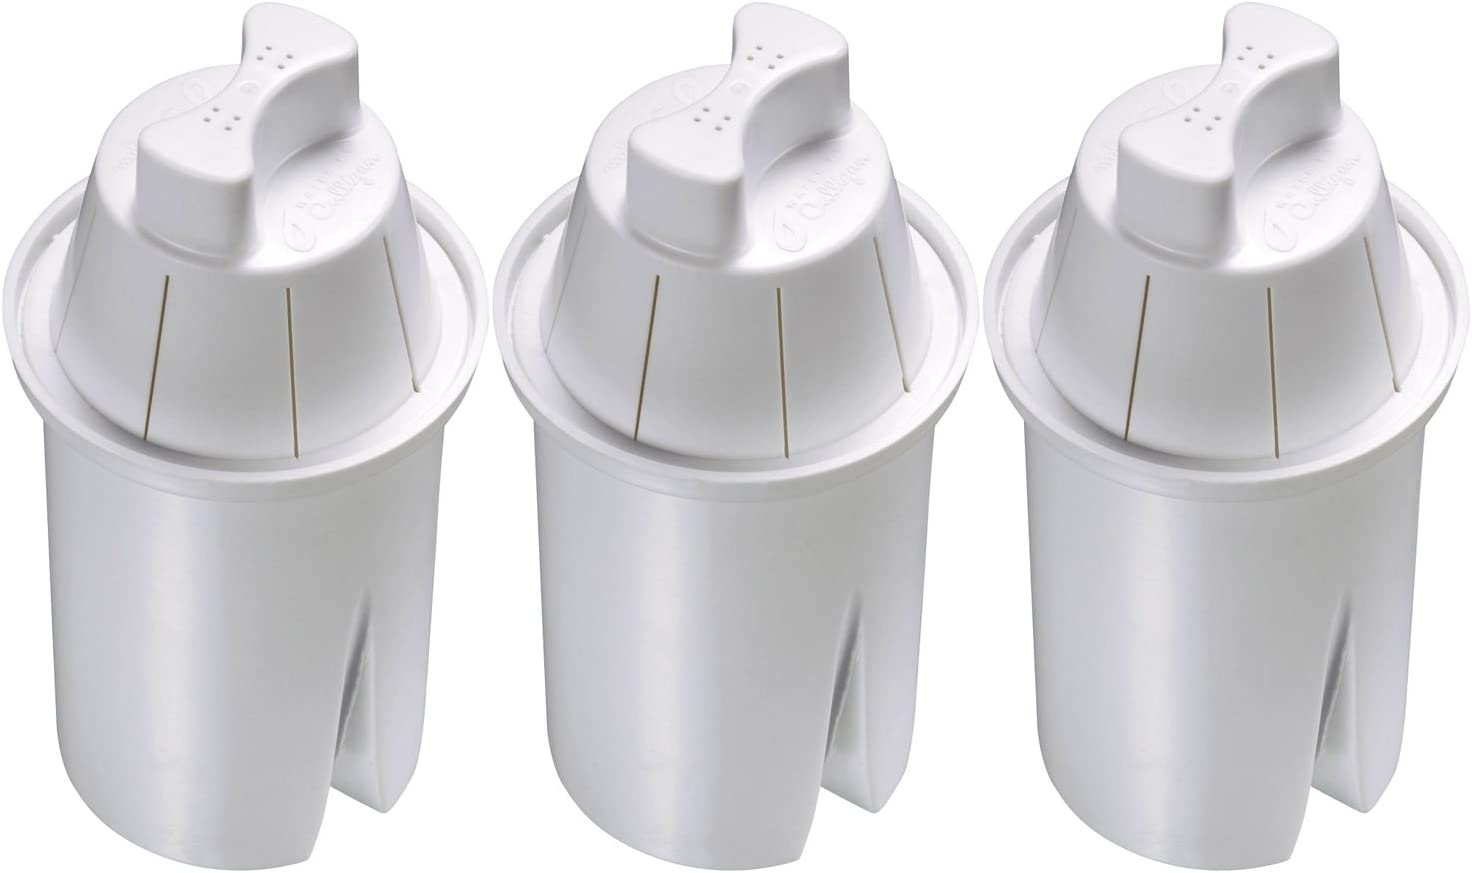 Culligan Replacement Cartridge, Single Unit, White: Replacement Pitcher Water Filters: Kitchen & Dining